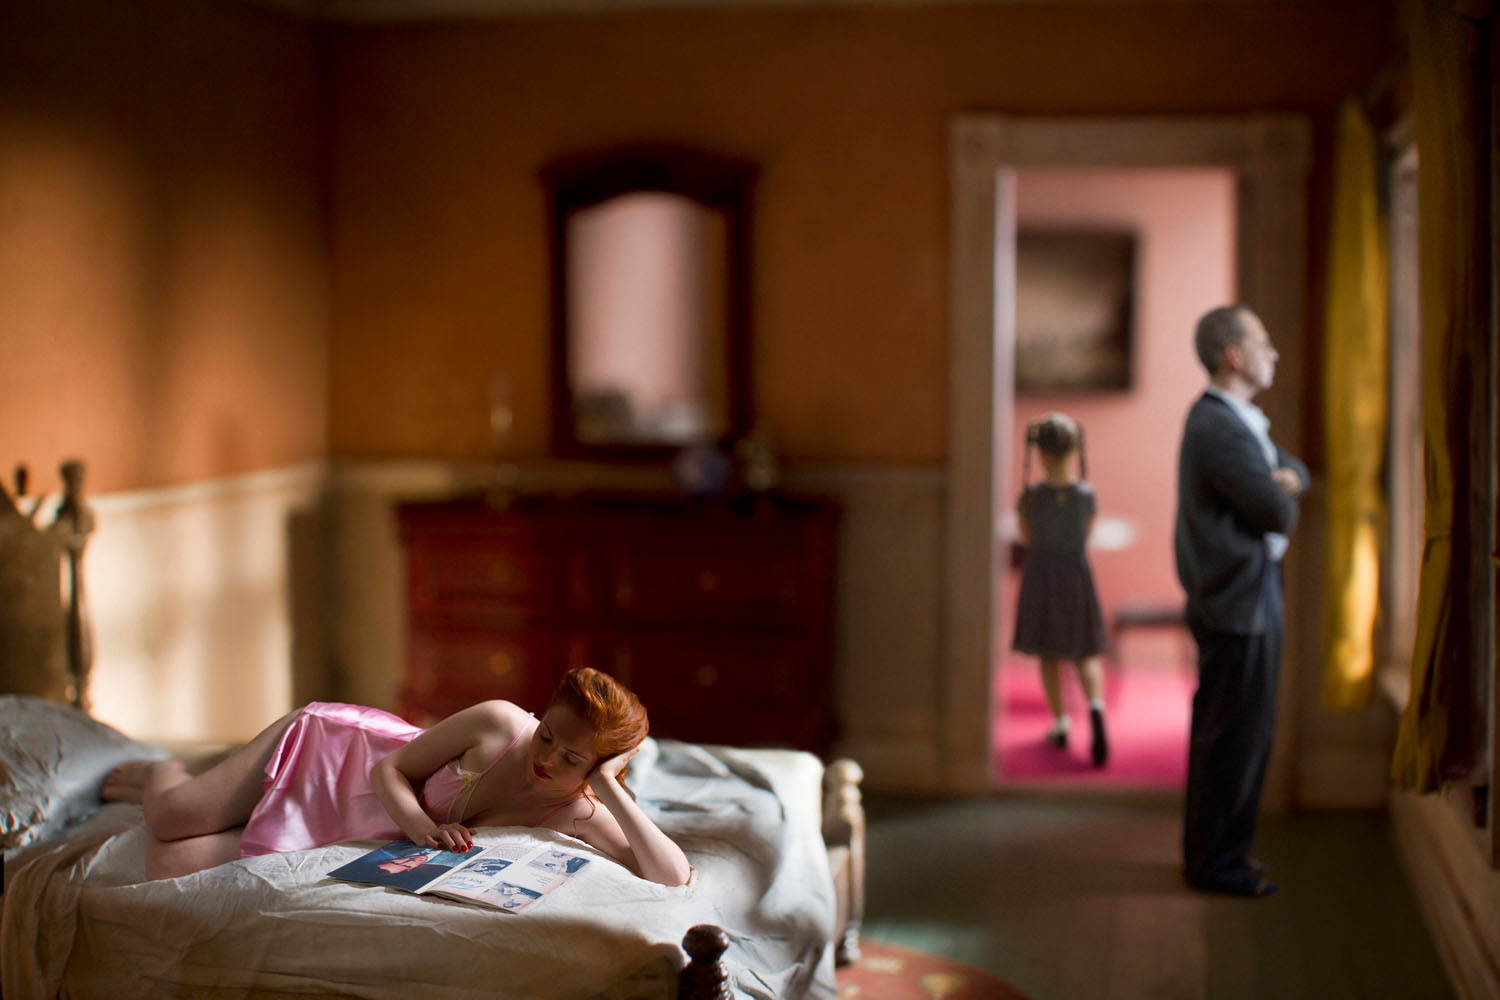 Pink Bedroom (Family), (2013)